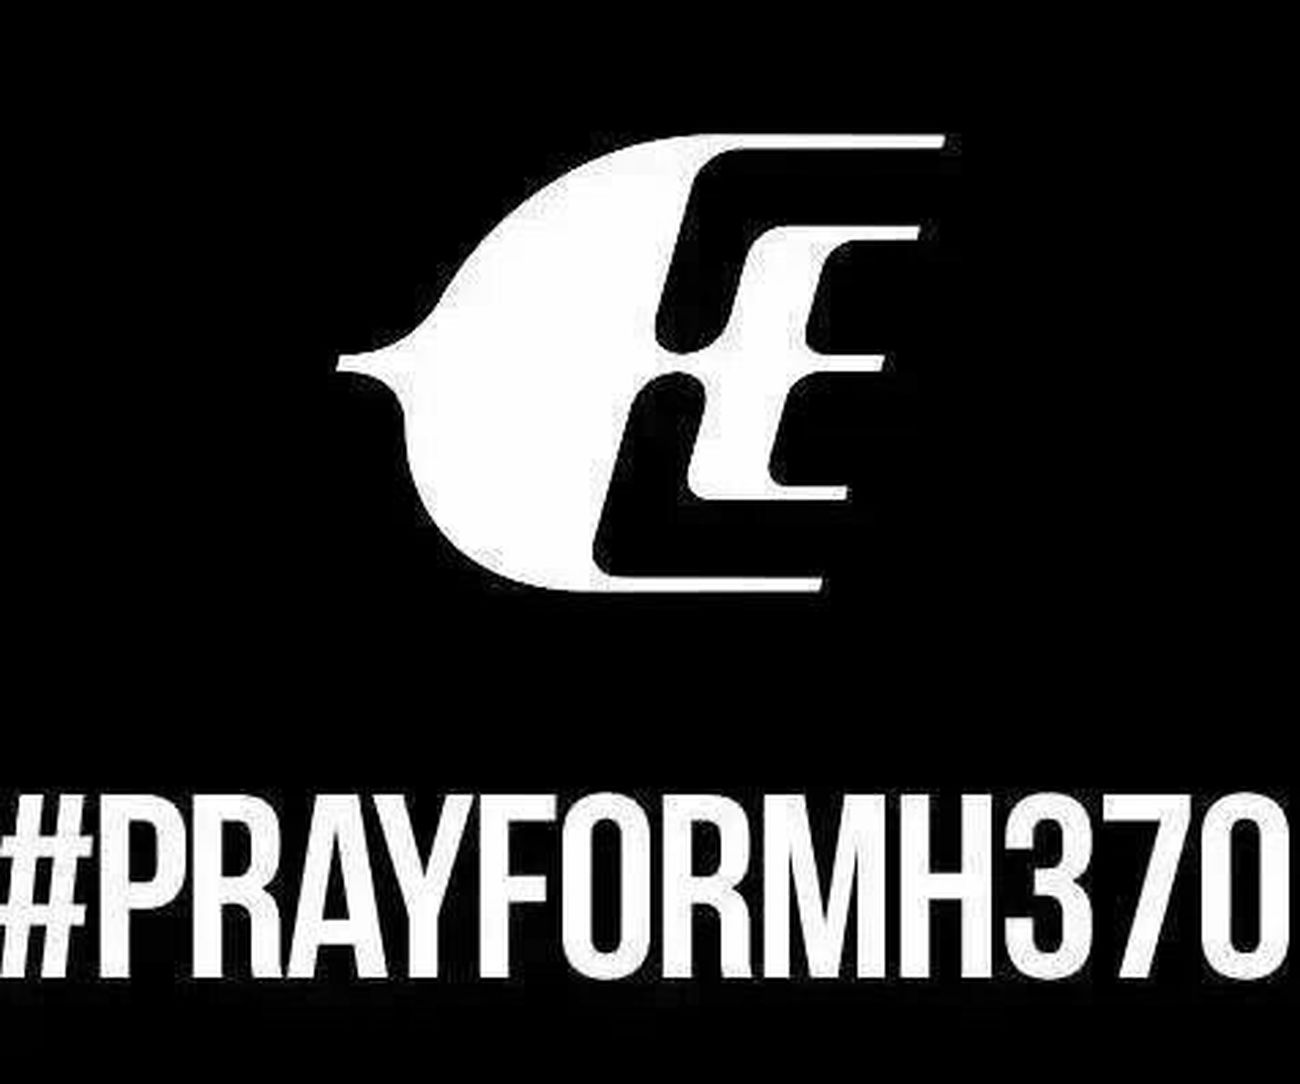 MH370 PrayforMH370 Pray4mh370 MissingMH370